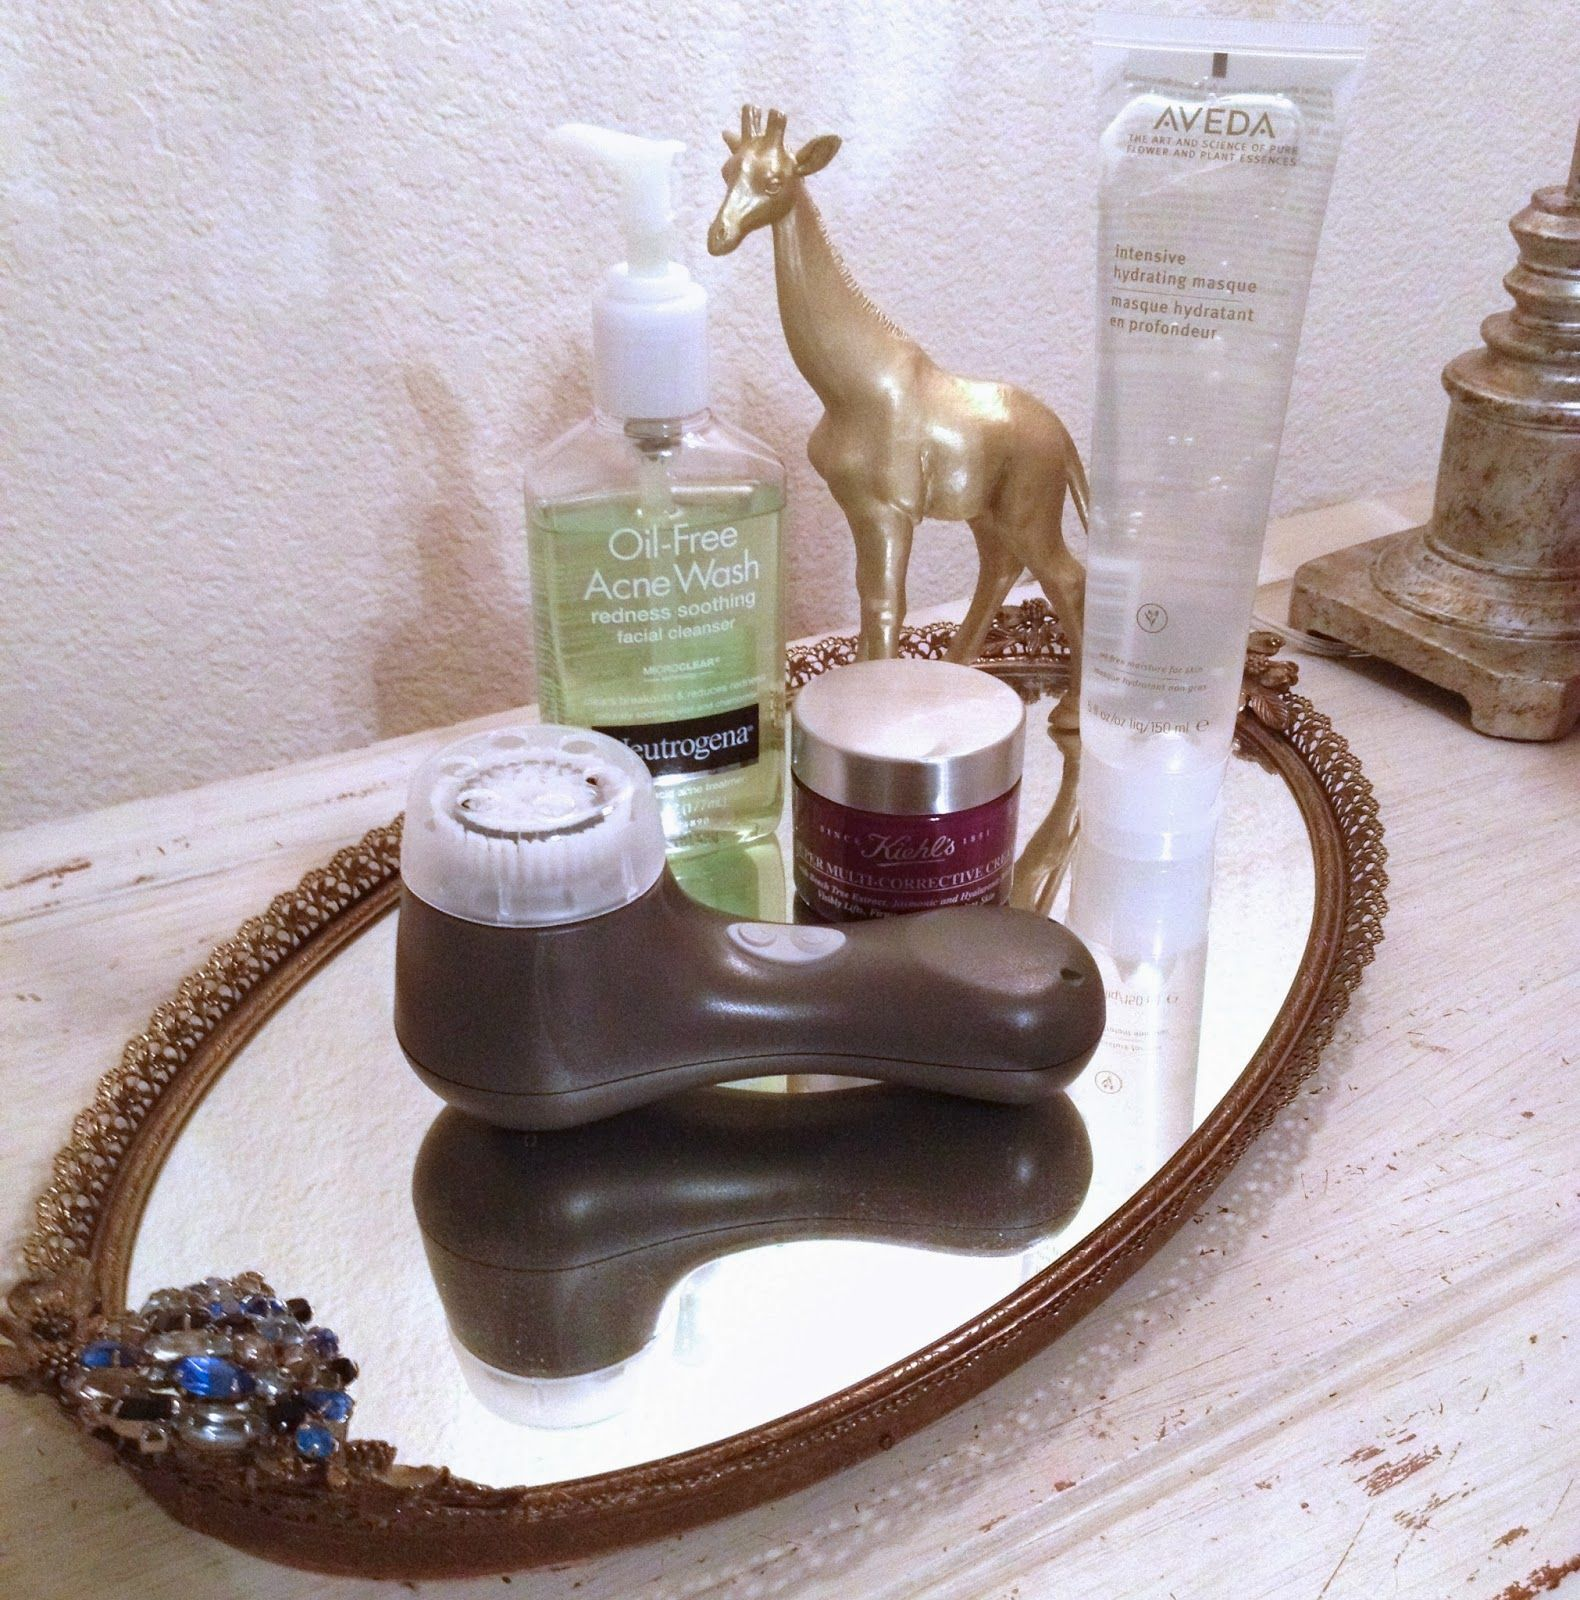 Don't let winter dry & age your skin! I've posted my product weapons to combat the harsh winter elements and keep your skin radiant and smooth. Find out more at www.fashionablyoutdoors.blogspot.com